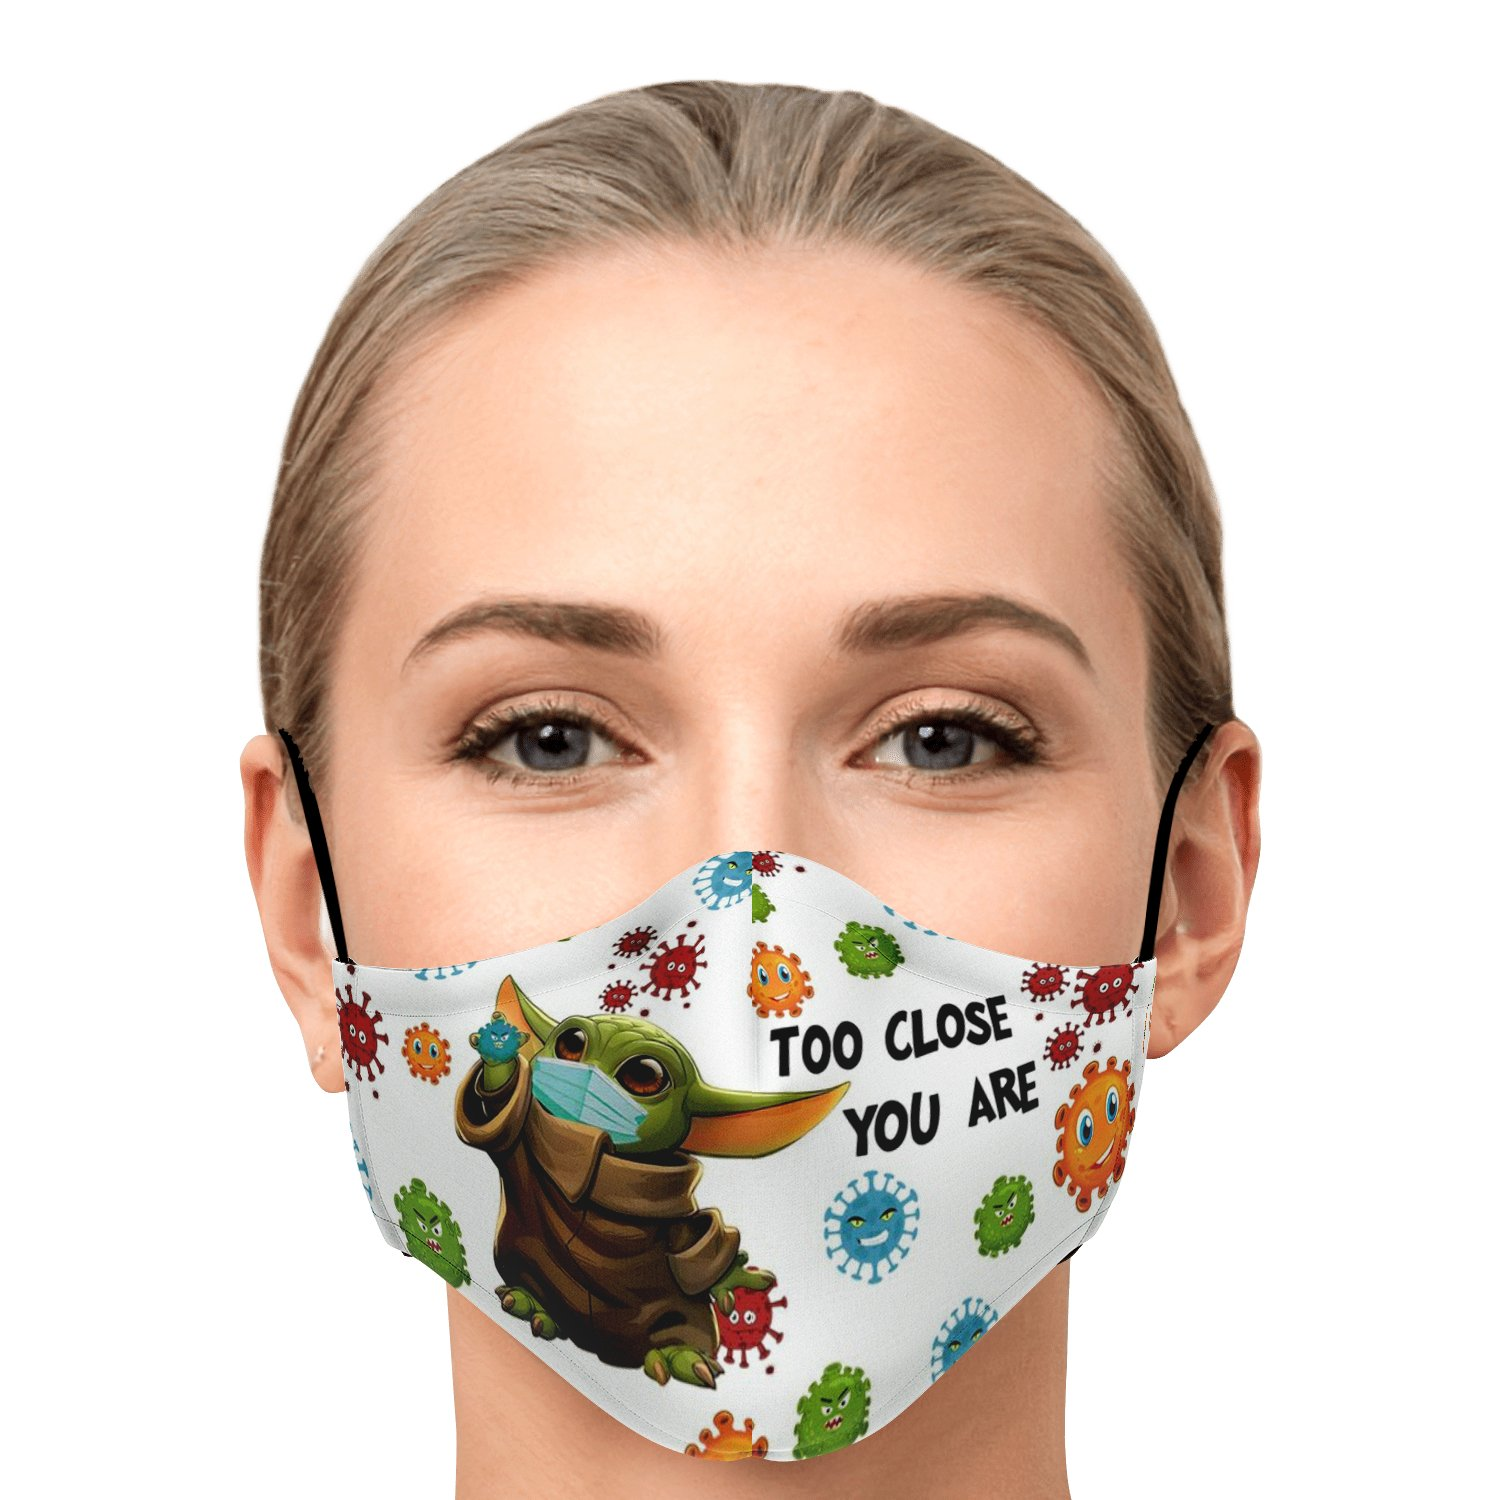 Too Close You Are Stay Away Covid-19 Baby Yoda Face Mask 1